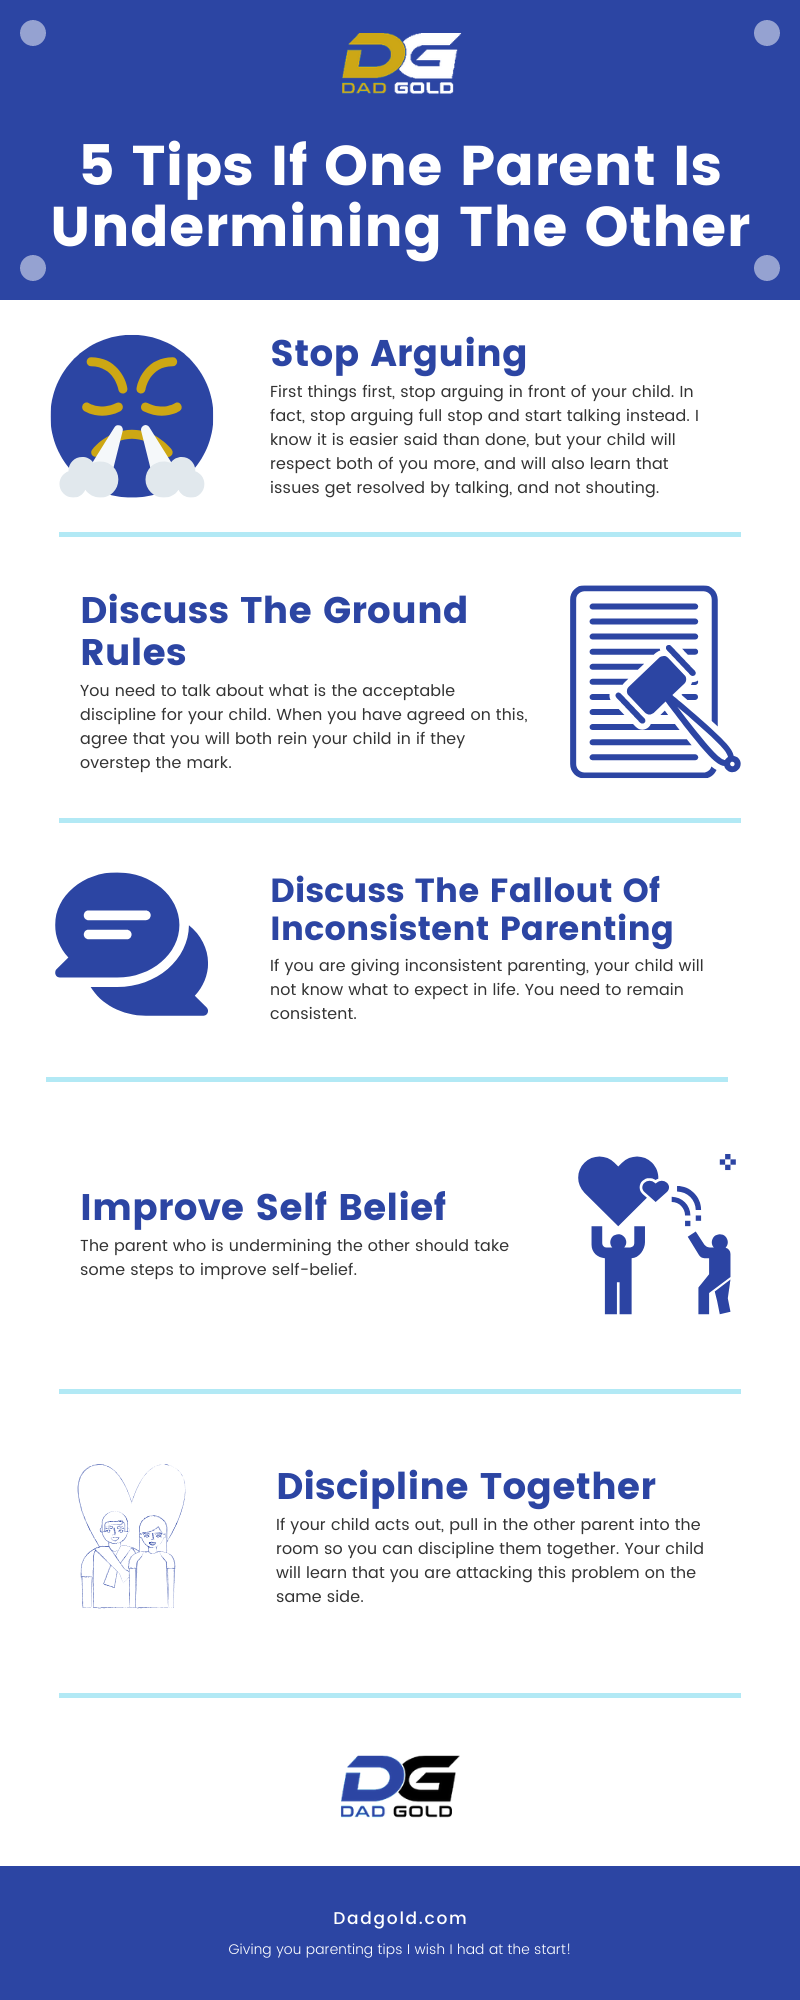 5 Tips If One Parent Is Undermining The Other Infographic